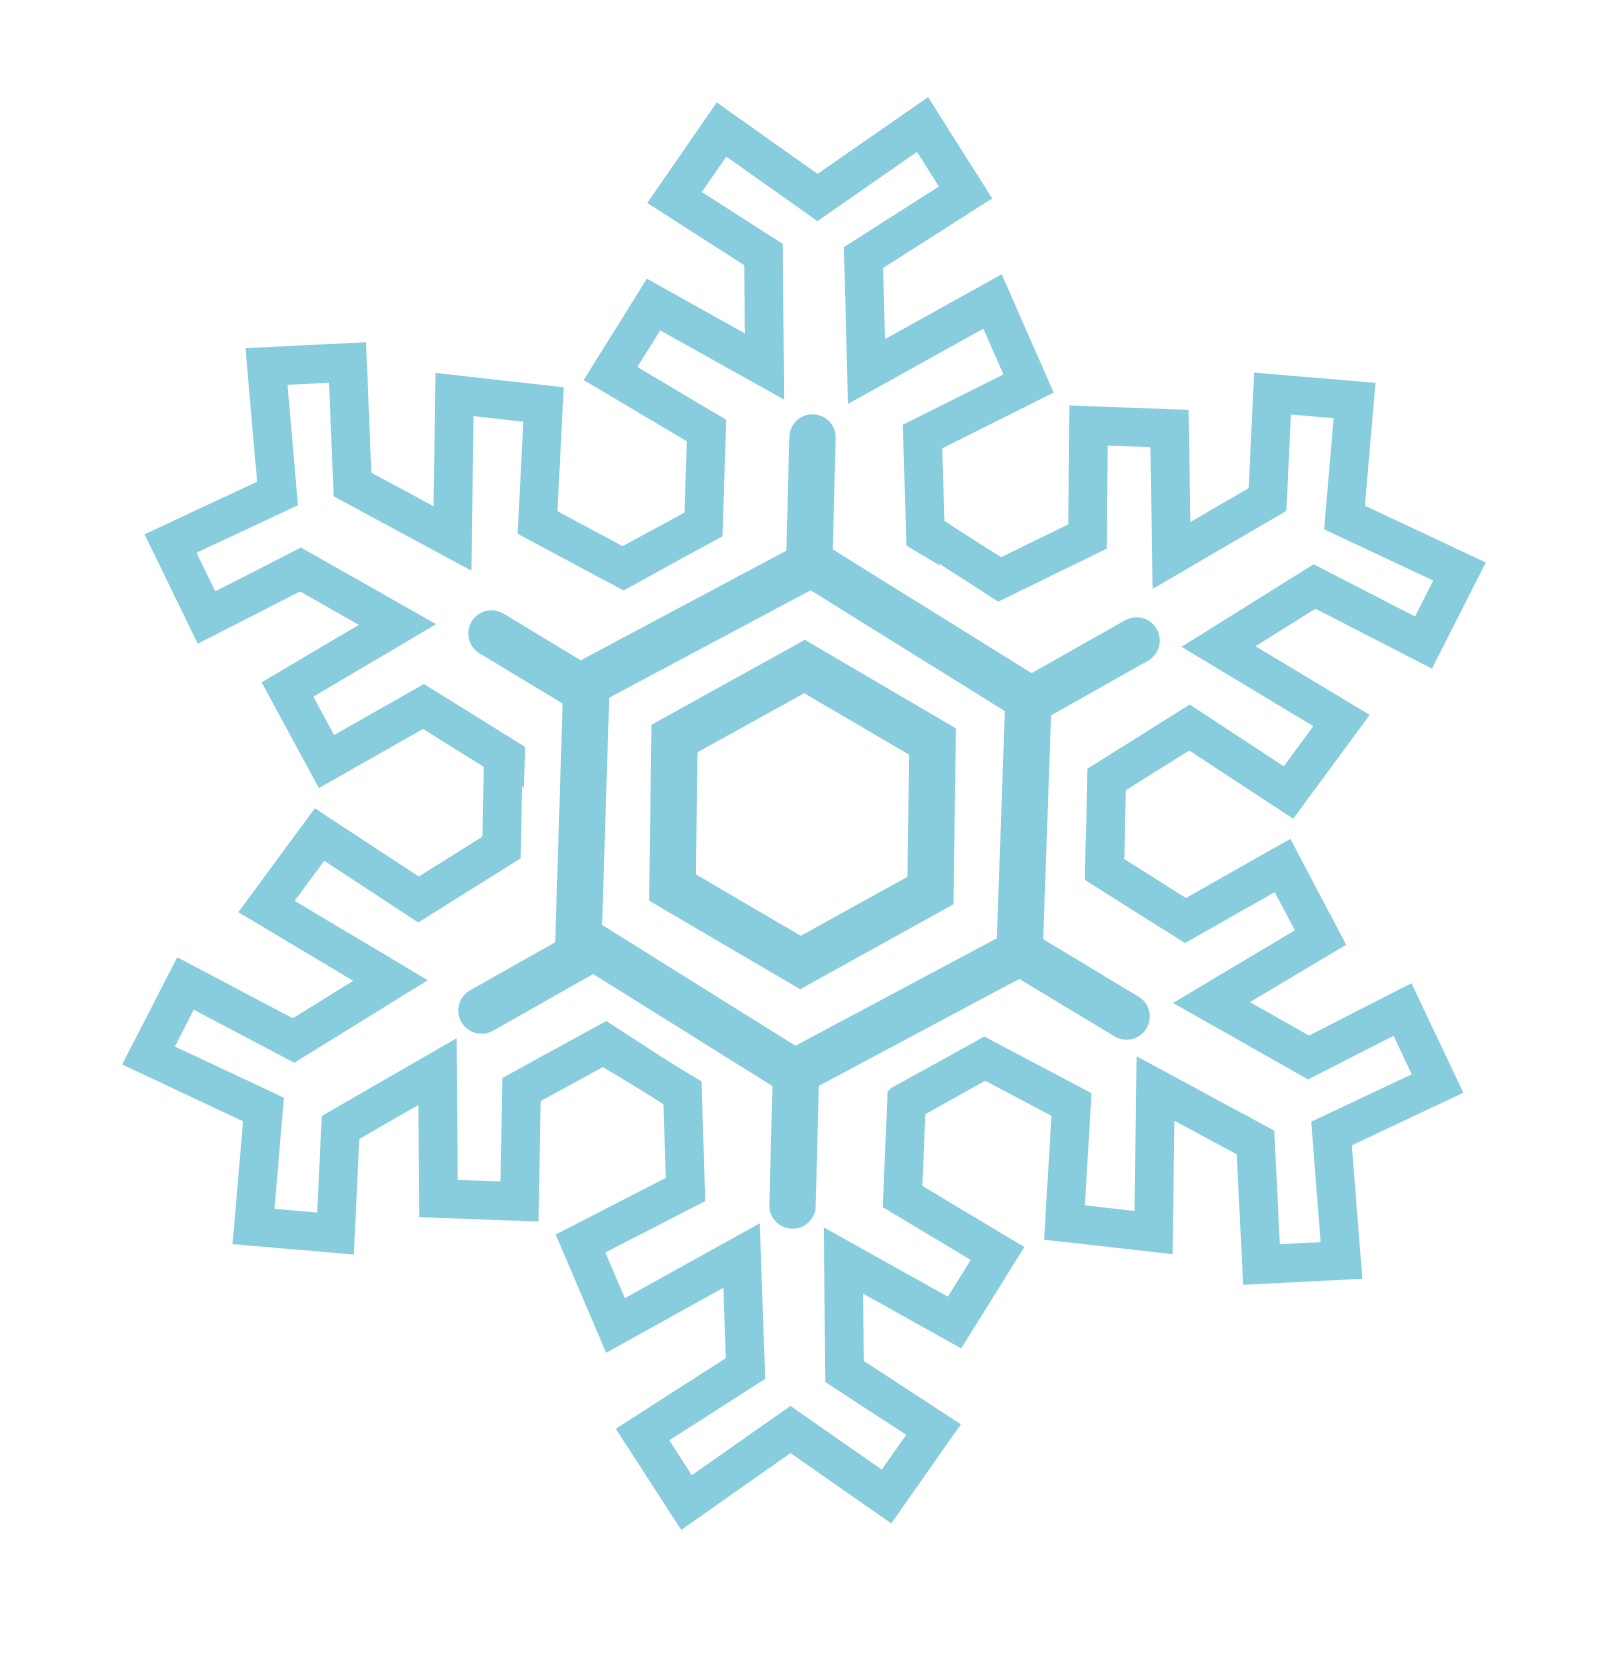 image ice clipart snowflake 14 png lumber tycoon 2 wikia rh lumber tycoon 2 wikia com clip art snowflakes black and white clip art snowflake images